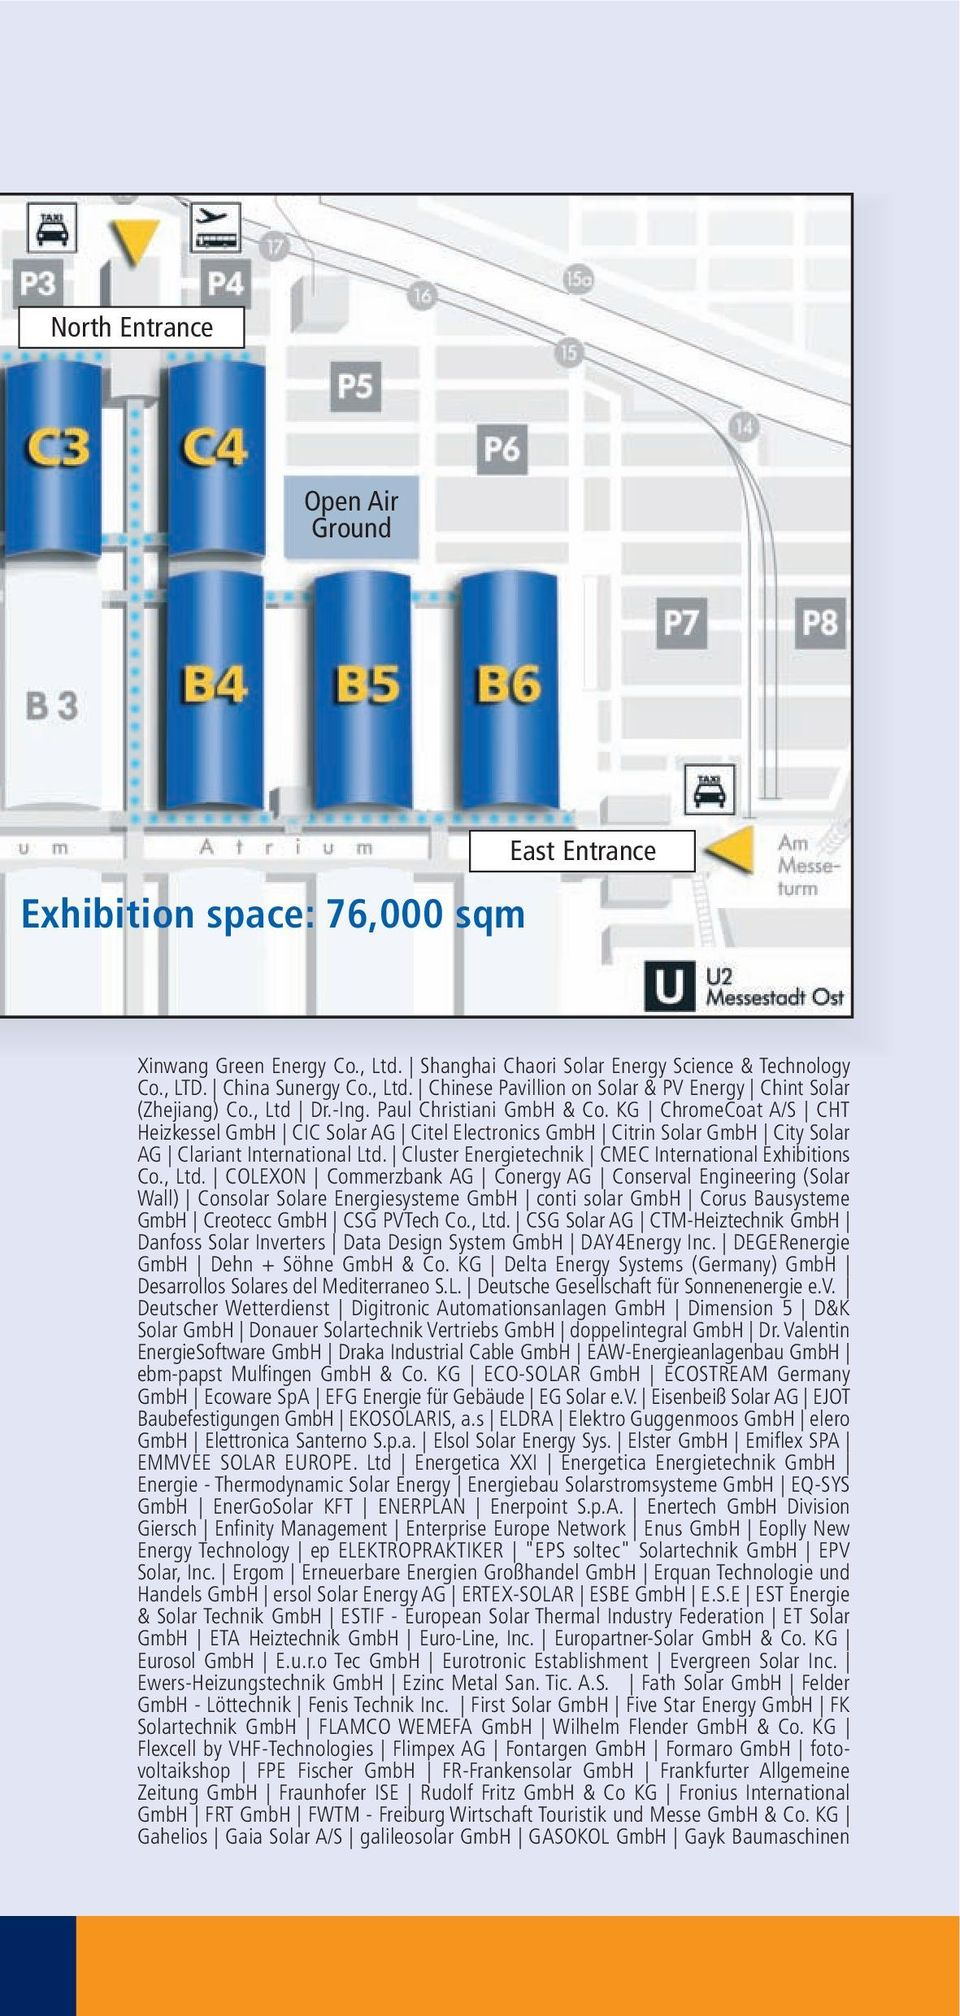 Cluster Energietechnik CMEC International Exhibitions Co., Ltd.